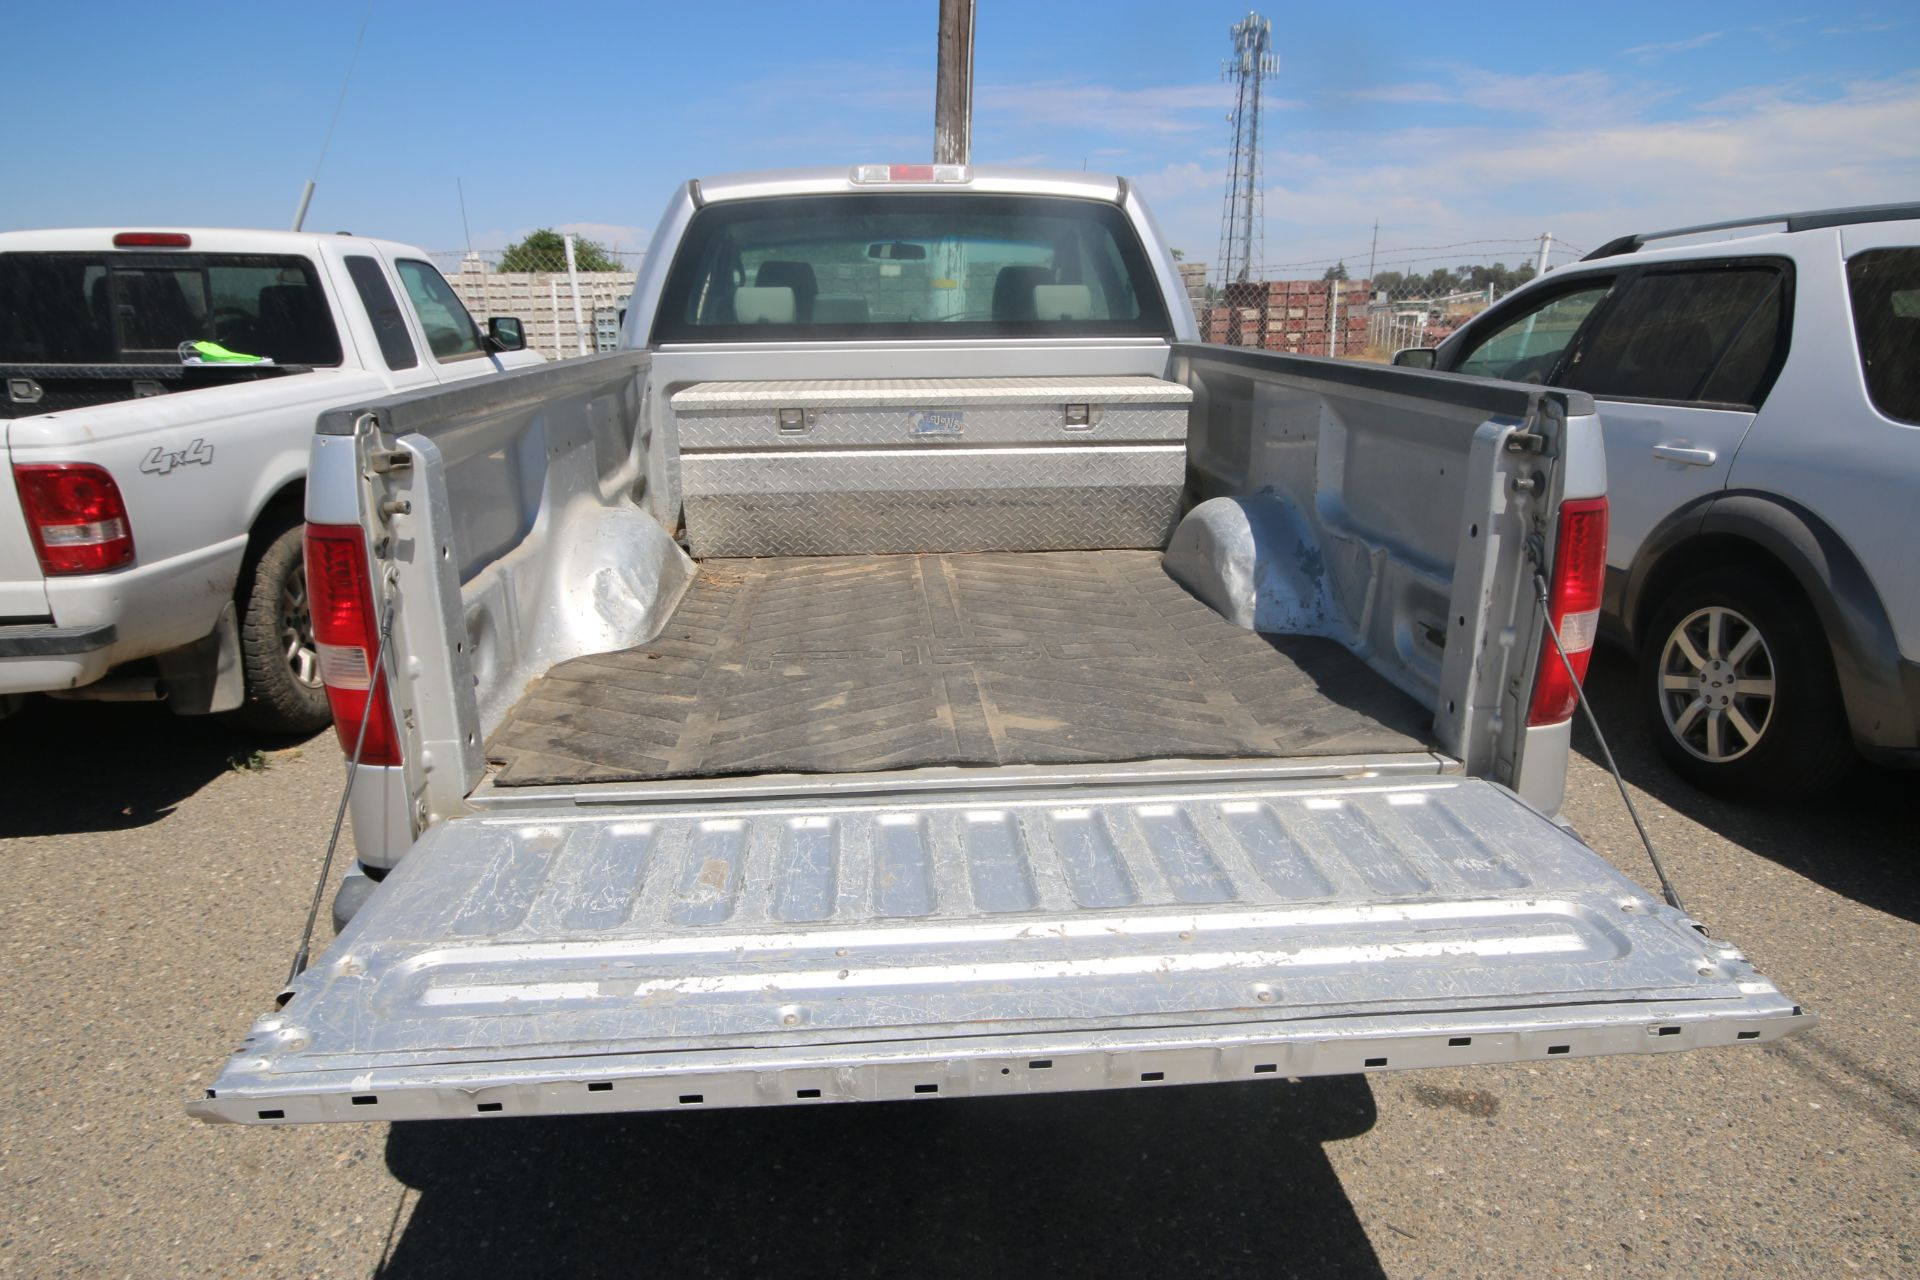 2008 Ford F150 Pick Up Truck, VIN #: 1FTRX12W7BFB9710, with 214,817 Miles, Started Up as of 06/24/ - Image 5 of 24